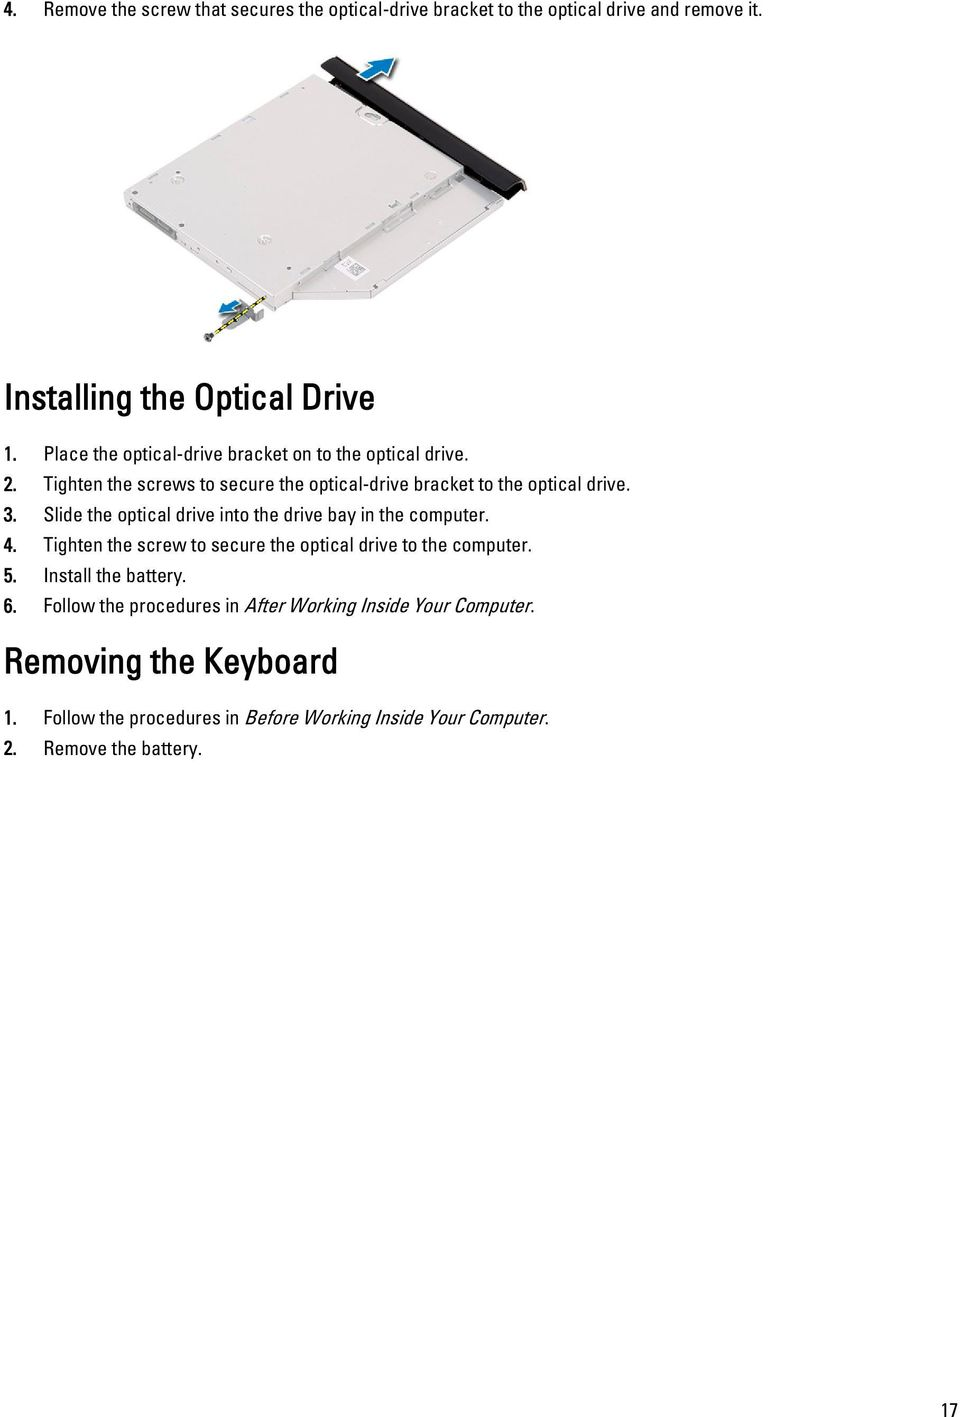 Dell Latitude 3440 Owners Manual Pdf Wire Puter Fan Wiring Diagram Also E6330 Slide The Optical Drive Into Bay In Computer 4 Tighten